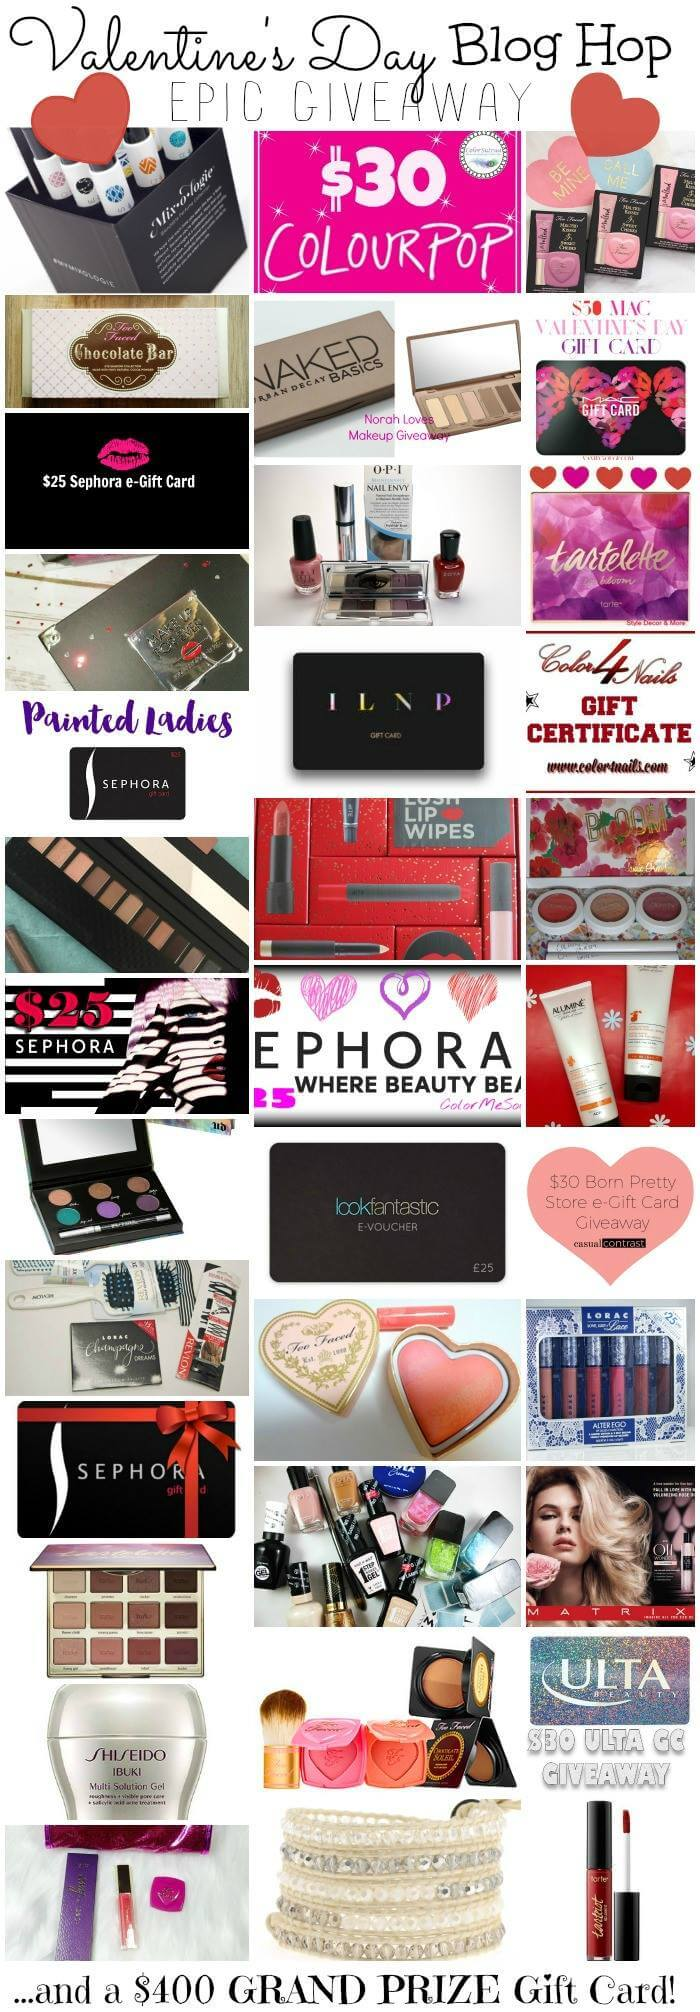 Valentine's Day Beauty Blog Hop Giveaway